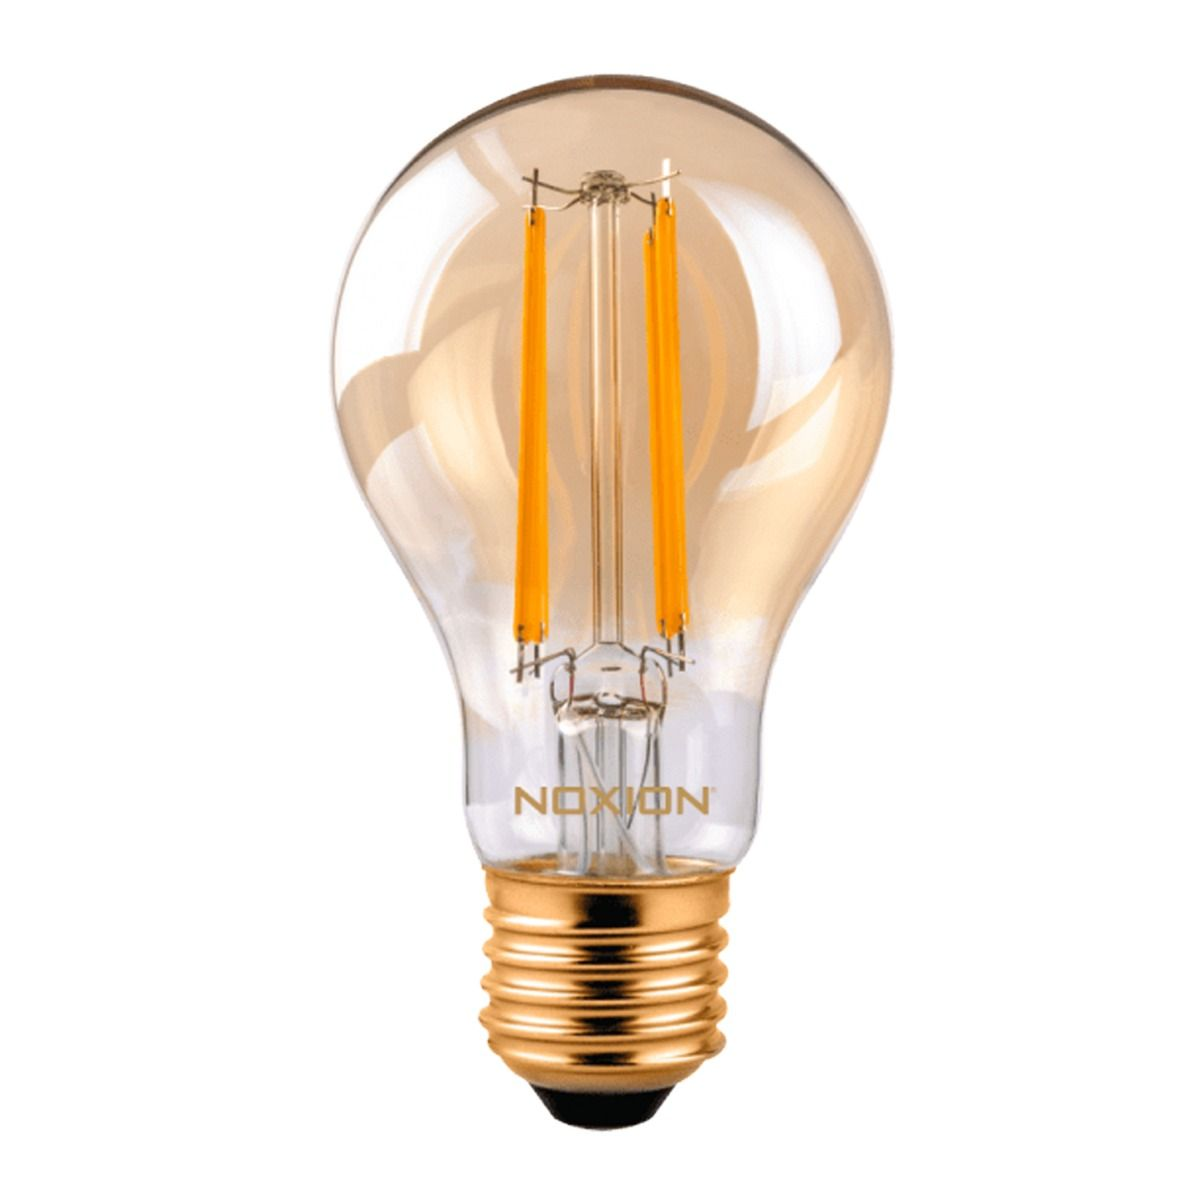 Noxion Lucent Classic LED Filament A60 E27 8W 822 Clear | Dimmable - Extra Warm White - Replaces 50W